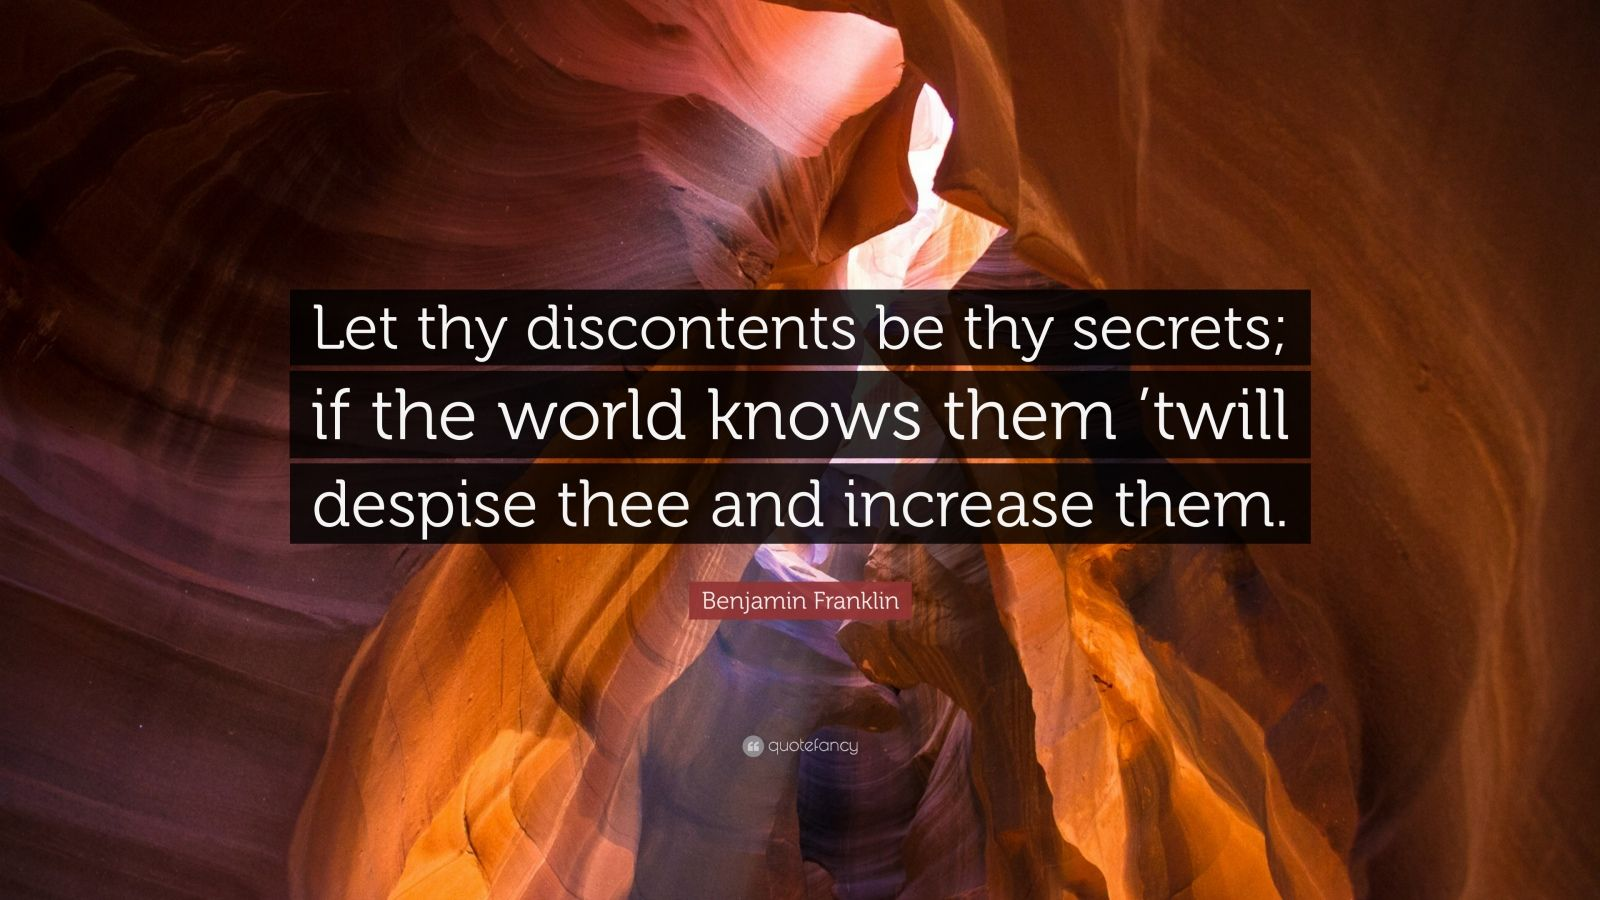 """Benjamin Franklin Quote: """"Let thy discontents be thy secrets; if the world knows them 'twill despise thee and increase them."""""""